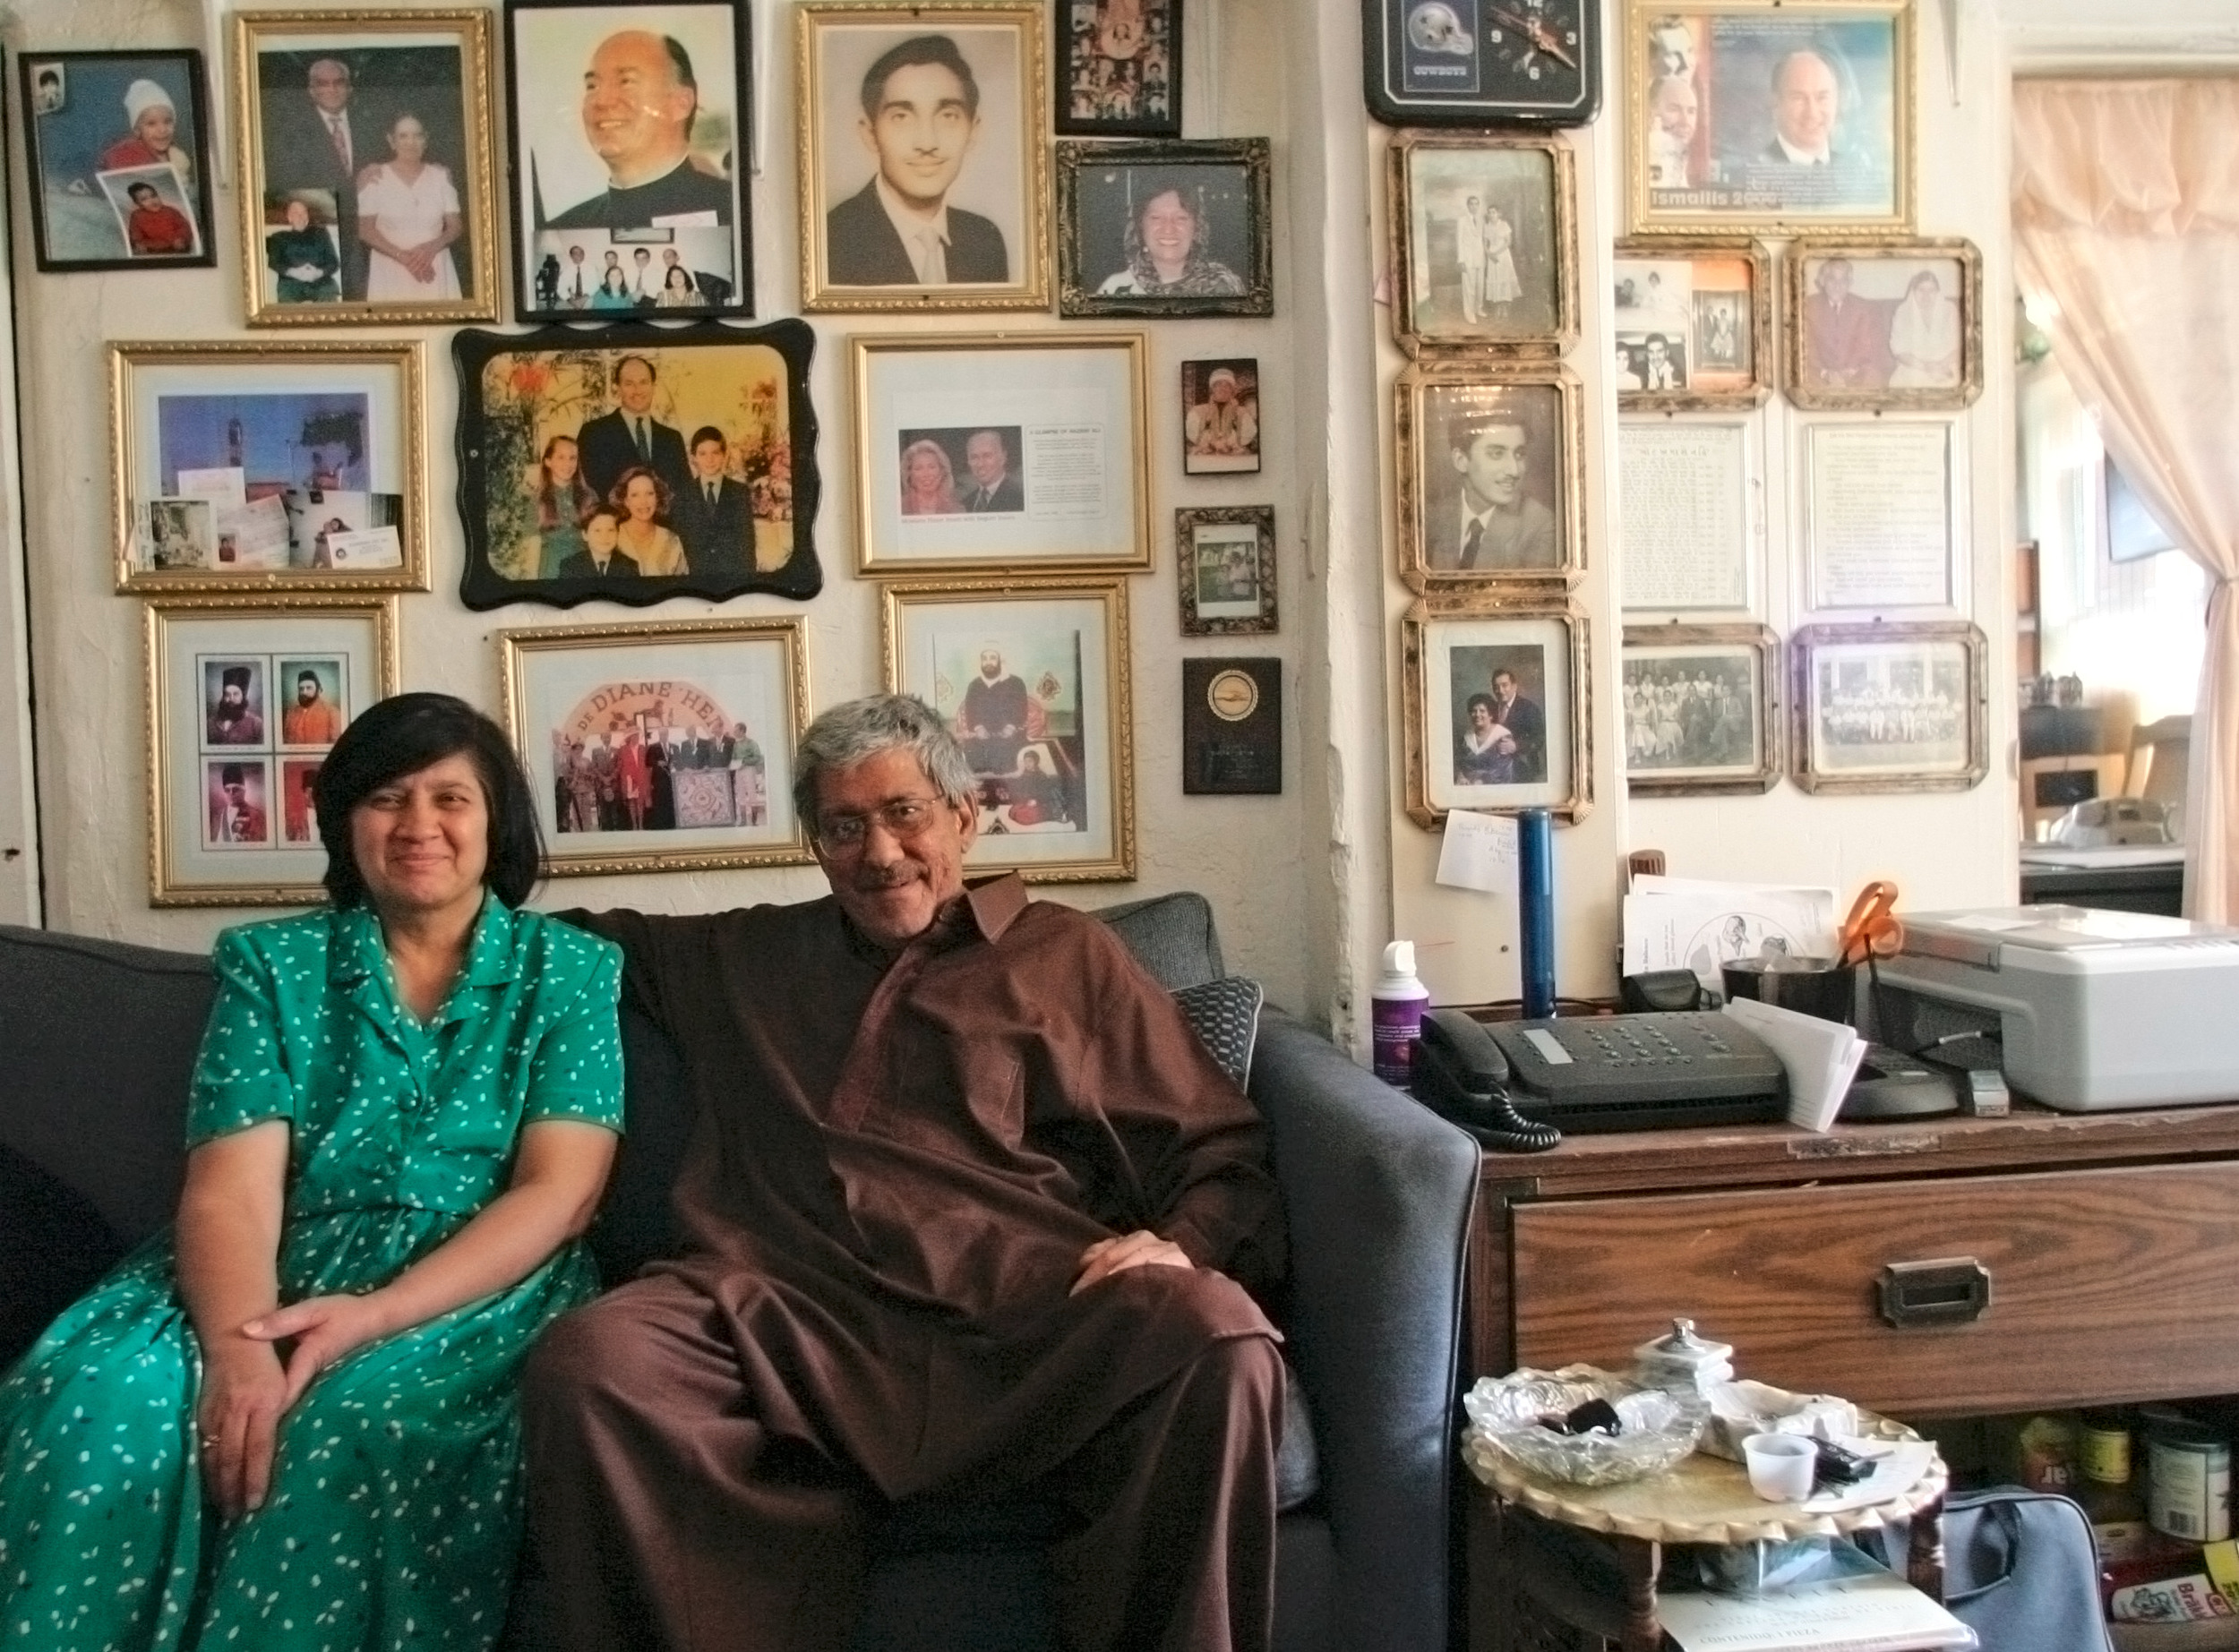 Shoky and Mohamed Natha, owners and residents of the Aztec motel in Albuquerque New Mexico in their small apartment on the premises.